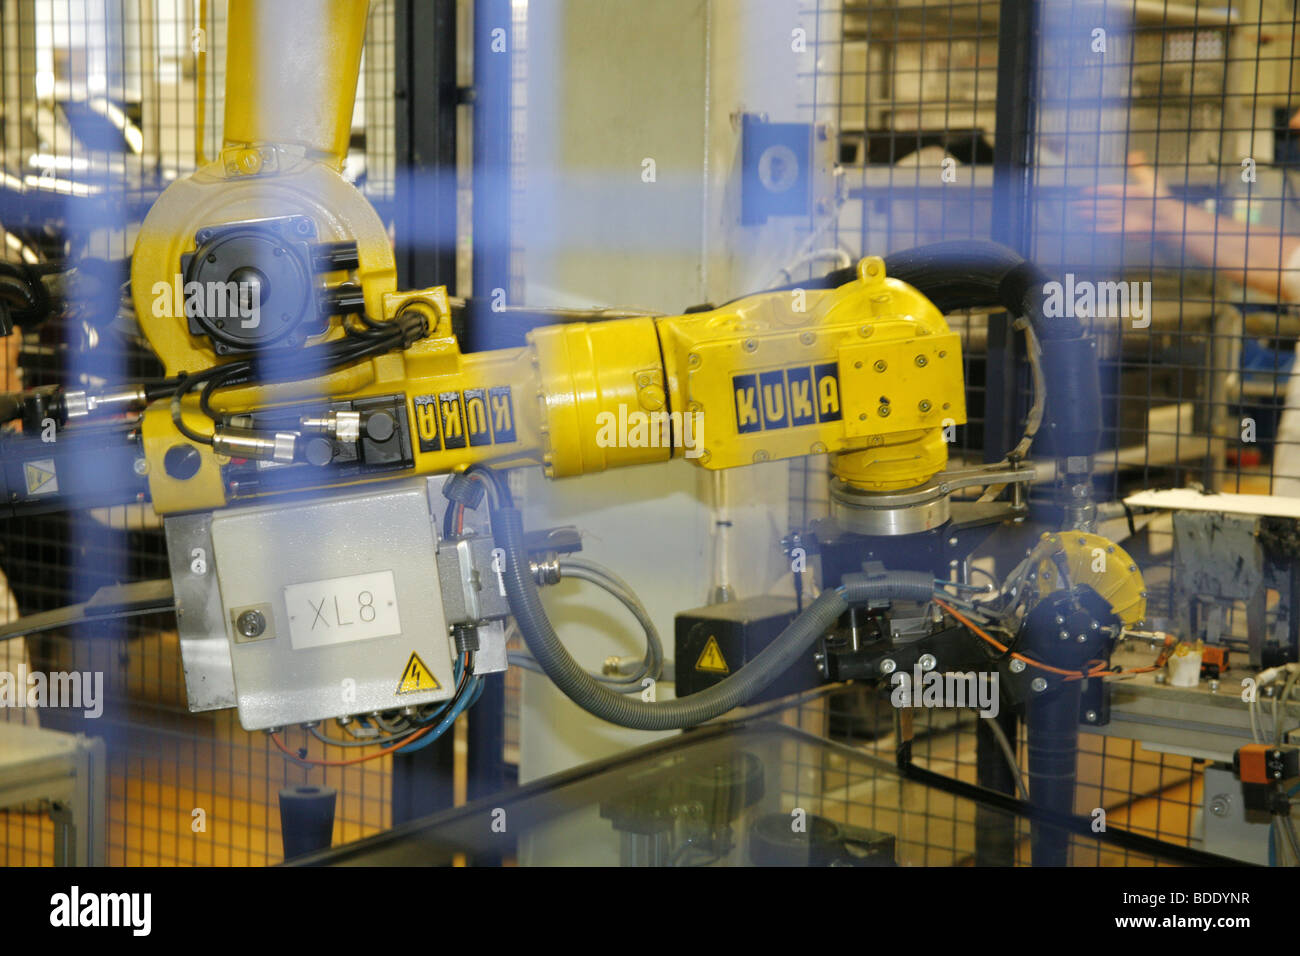 Robot in a car plant - Stock Image